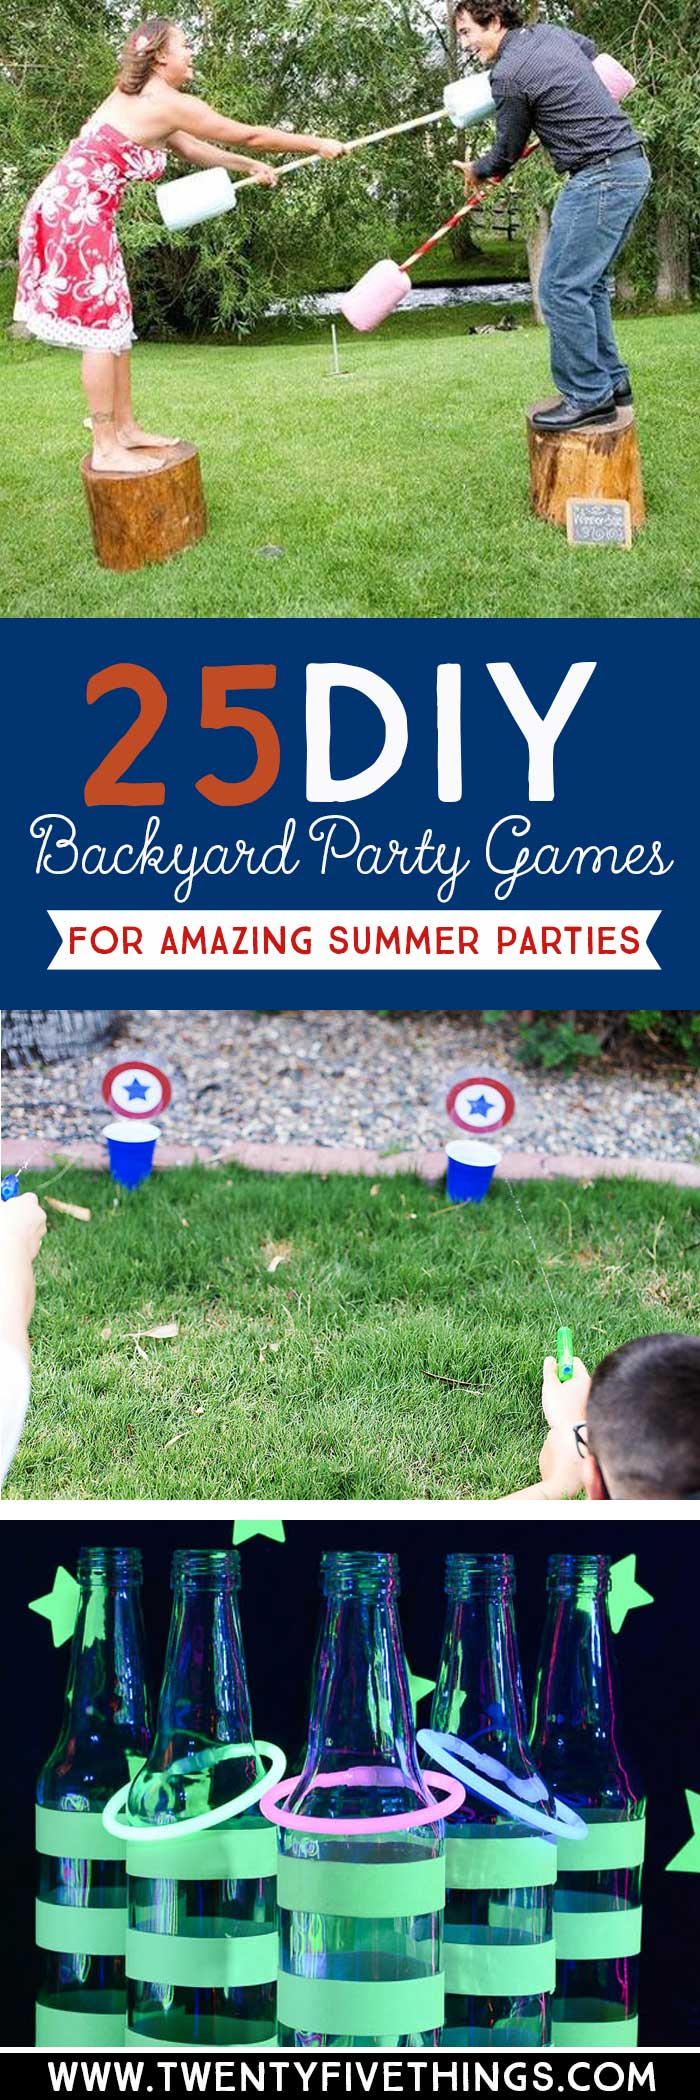 Use these fun DIY summer party games to plan your backyard parties for 4th of July, Memorial Day, birthdays and more!